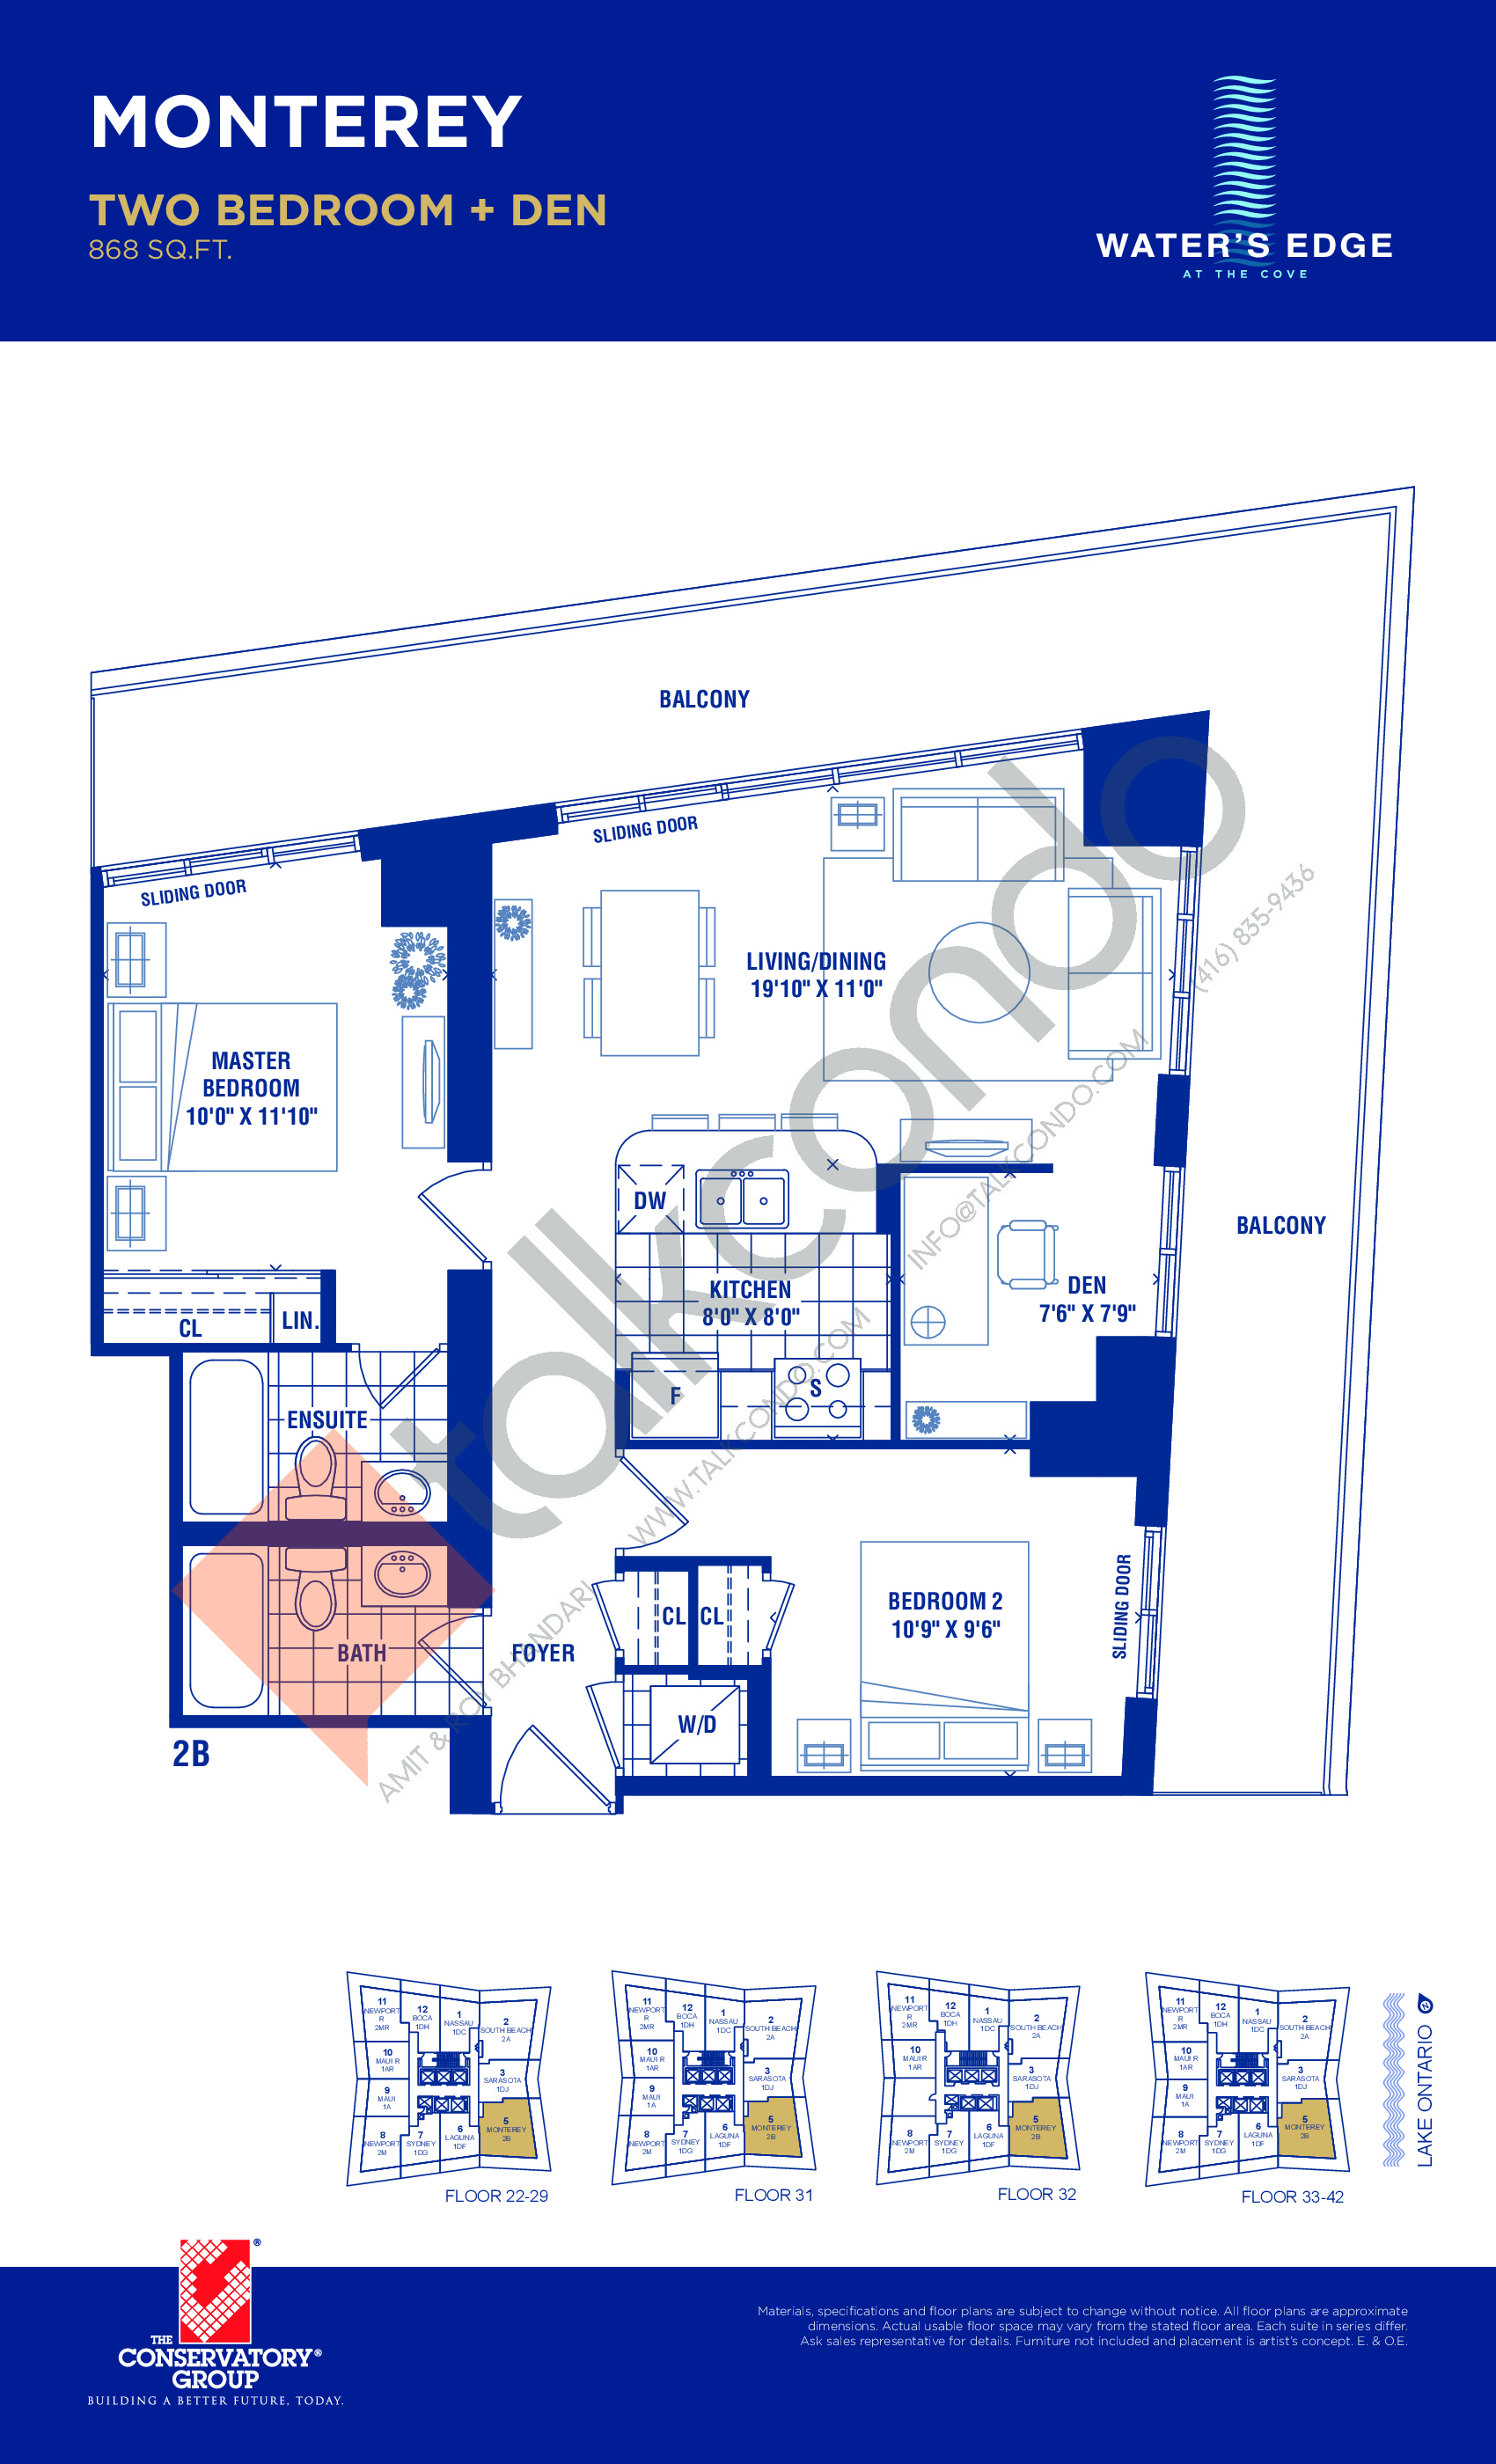 Monterey Floor Plan at Water's Edge at the Cove Condos - 868 sq.ft